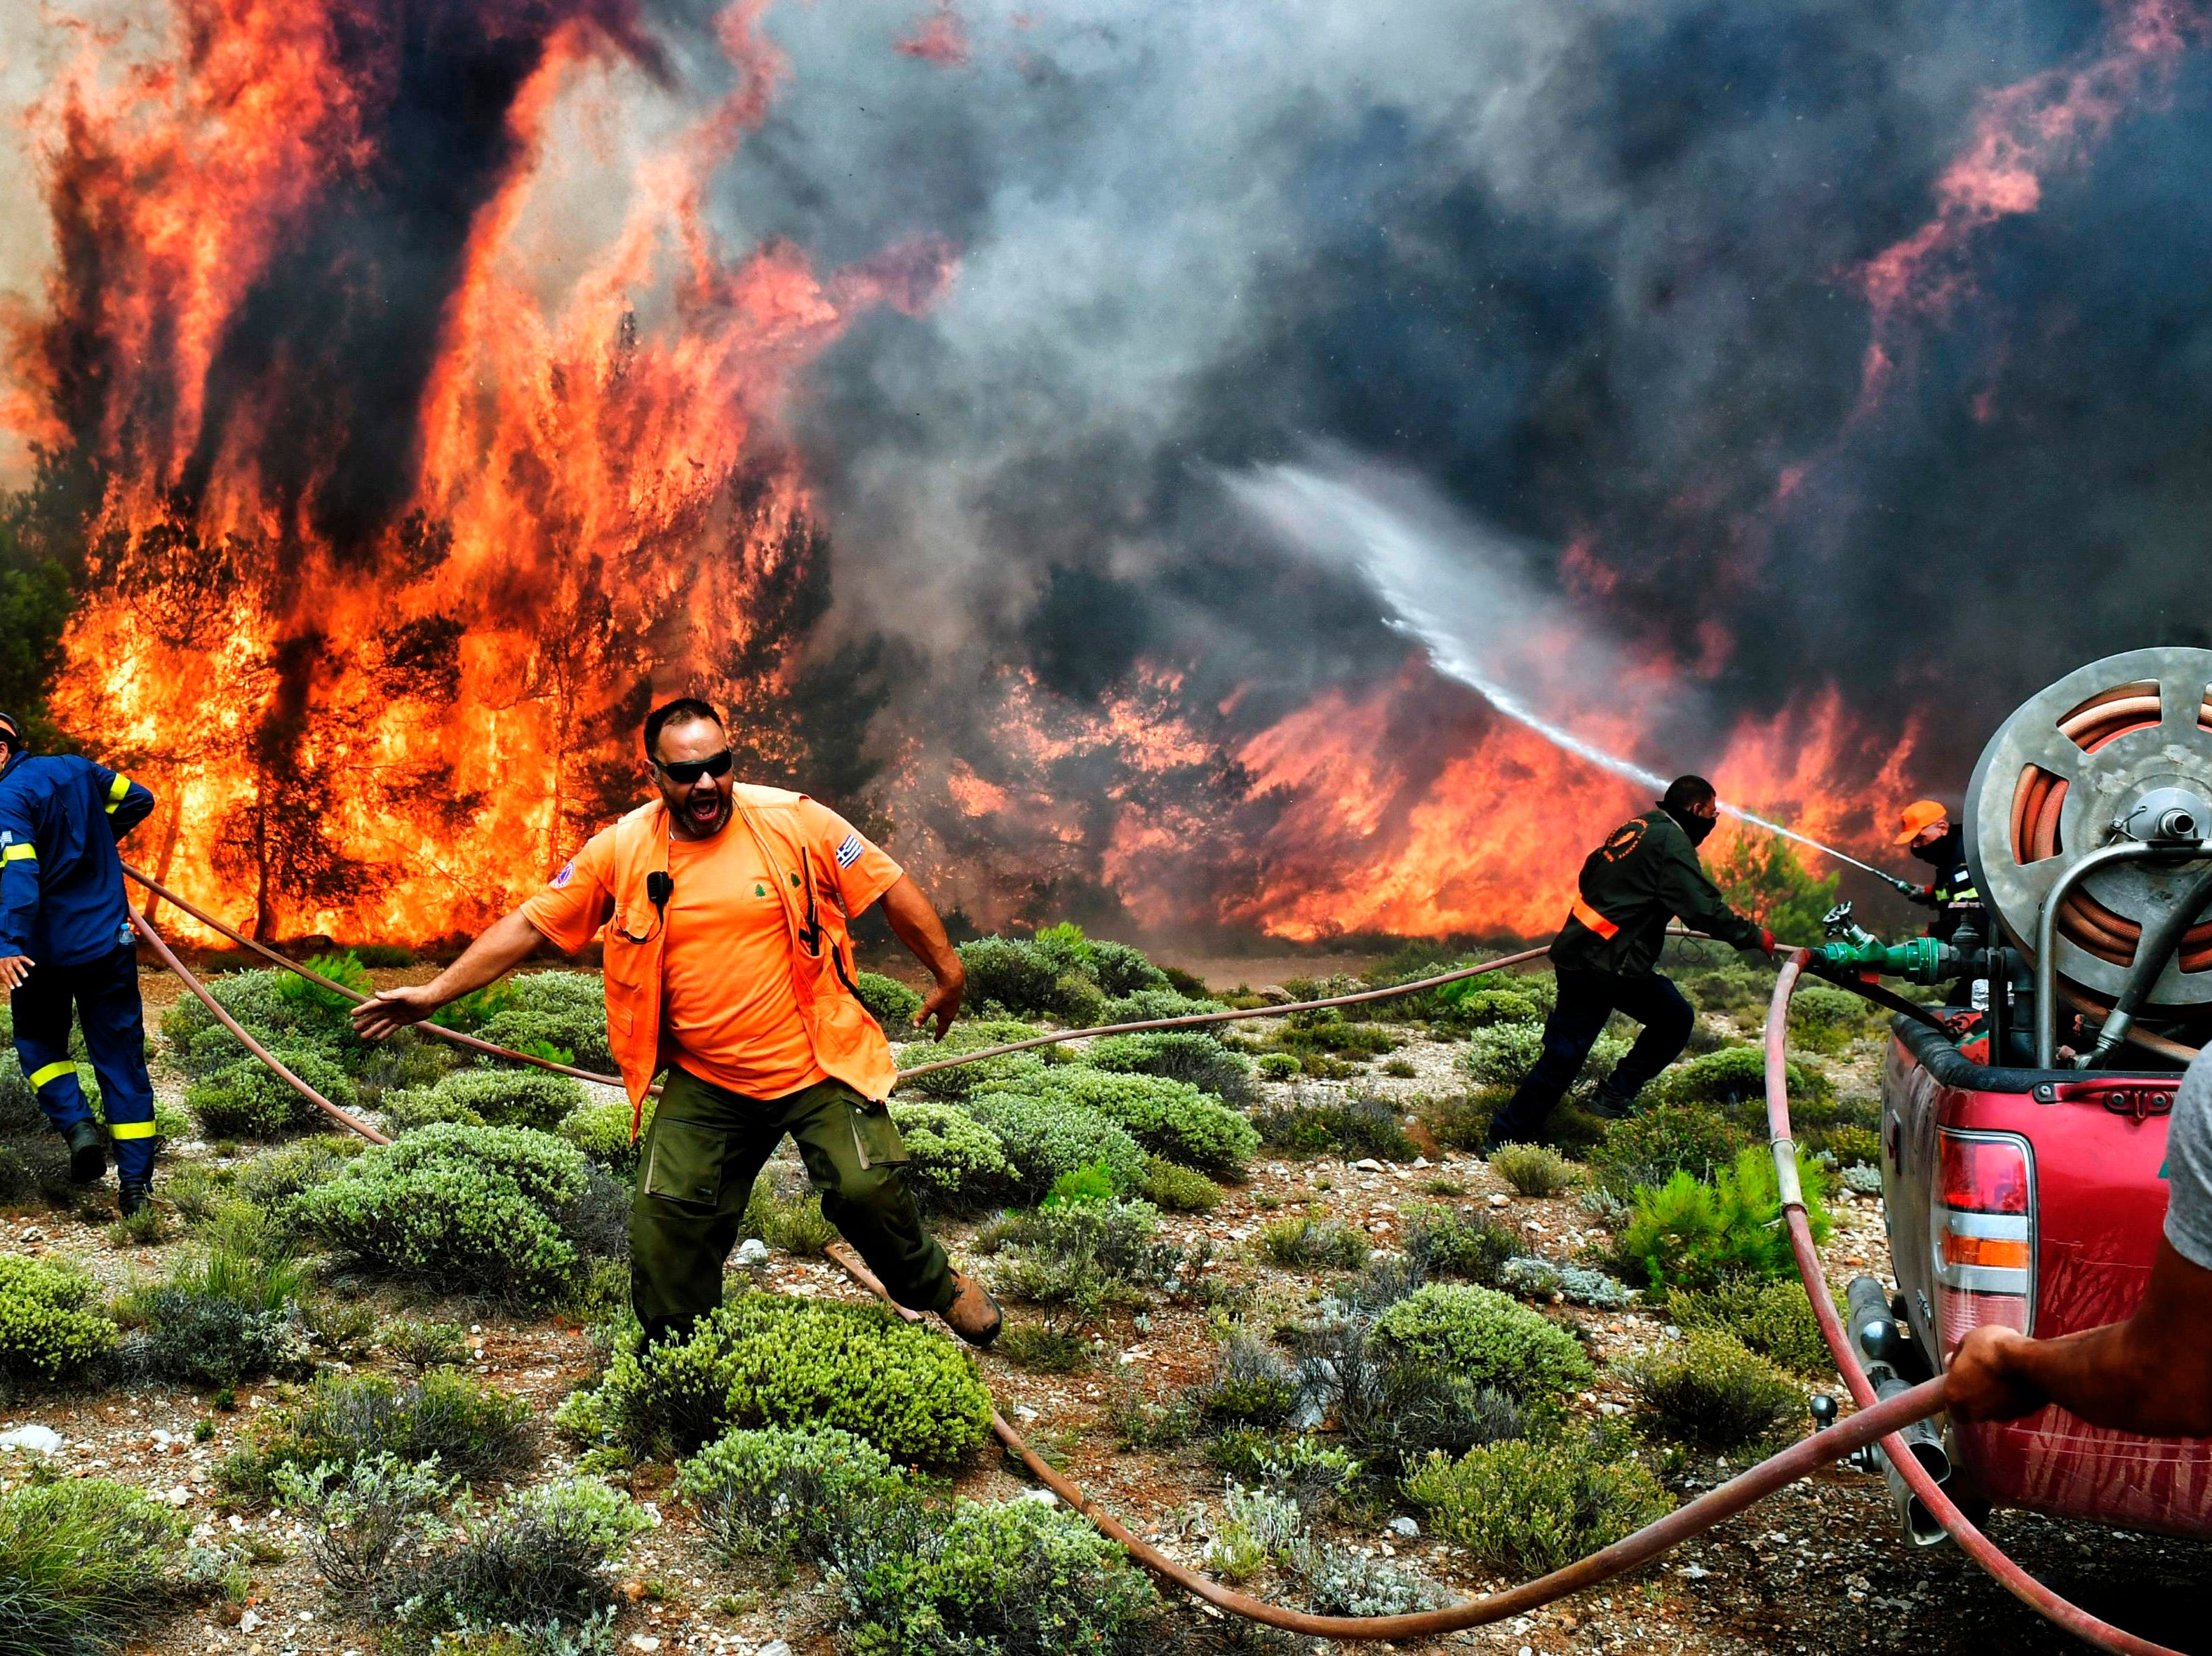 July 24, 2018: Firefighters and volunteers try to extinguish flames during a wildfire at the village of Kineta, near Athens.  Raging wildfires killed 74 people including small children in Greece, devouring homes and forests as terrified residents fled to the sea to escape the flames, authorities said.